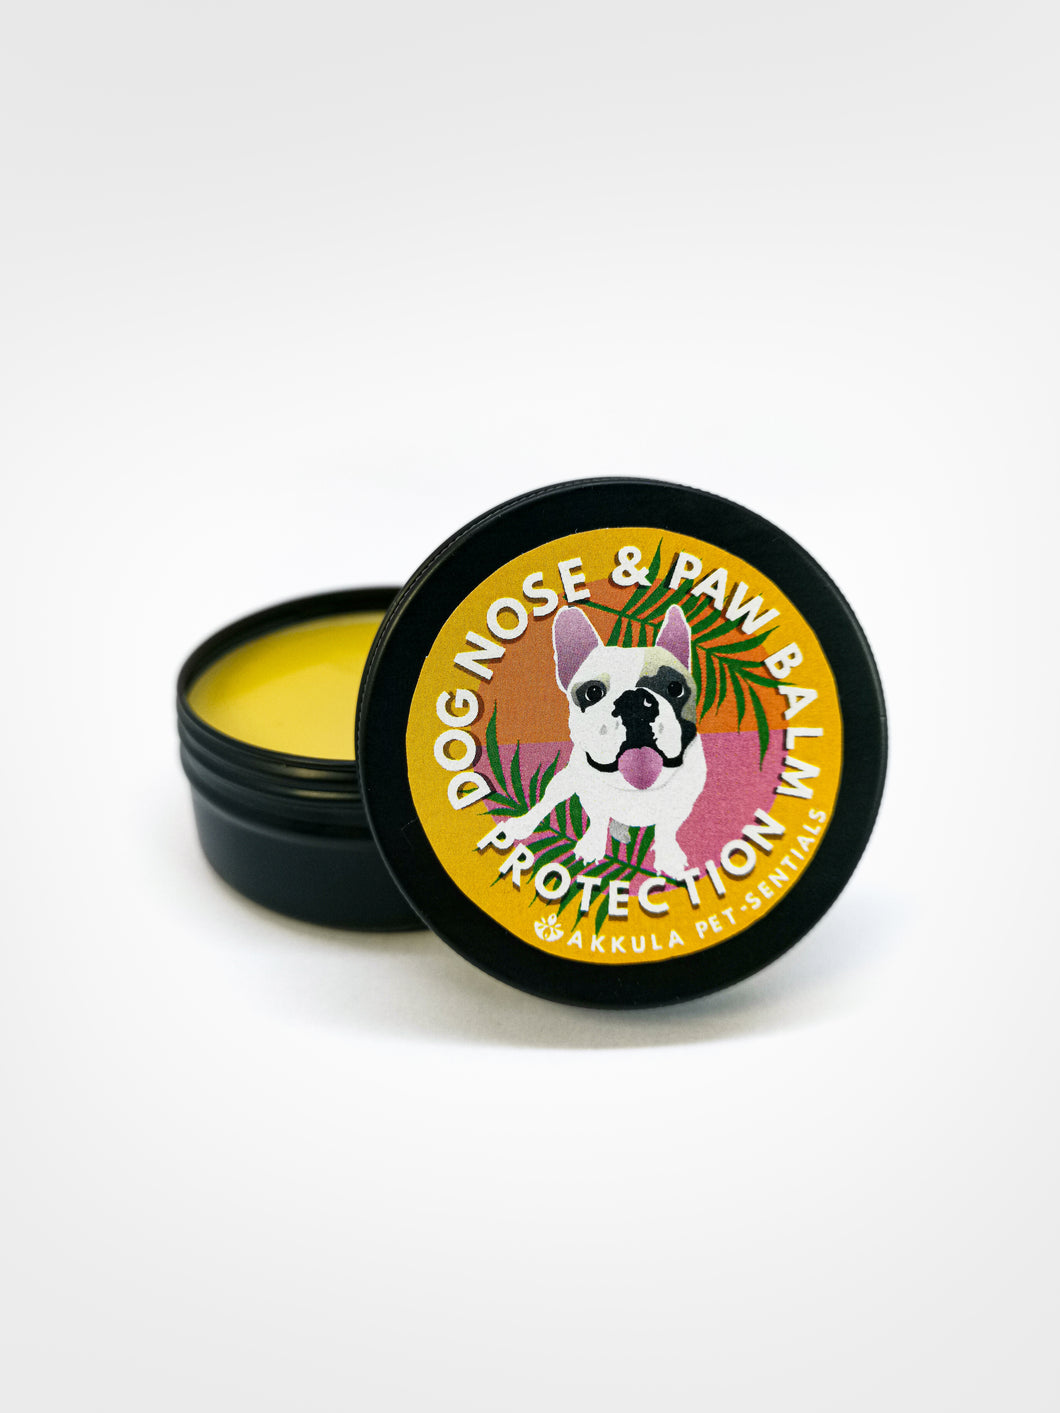 Dog Nose & Paw Balm Protection 50g